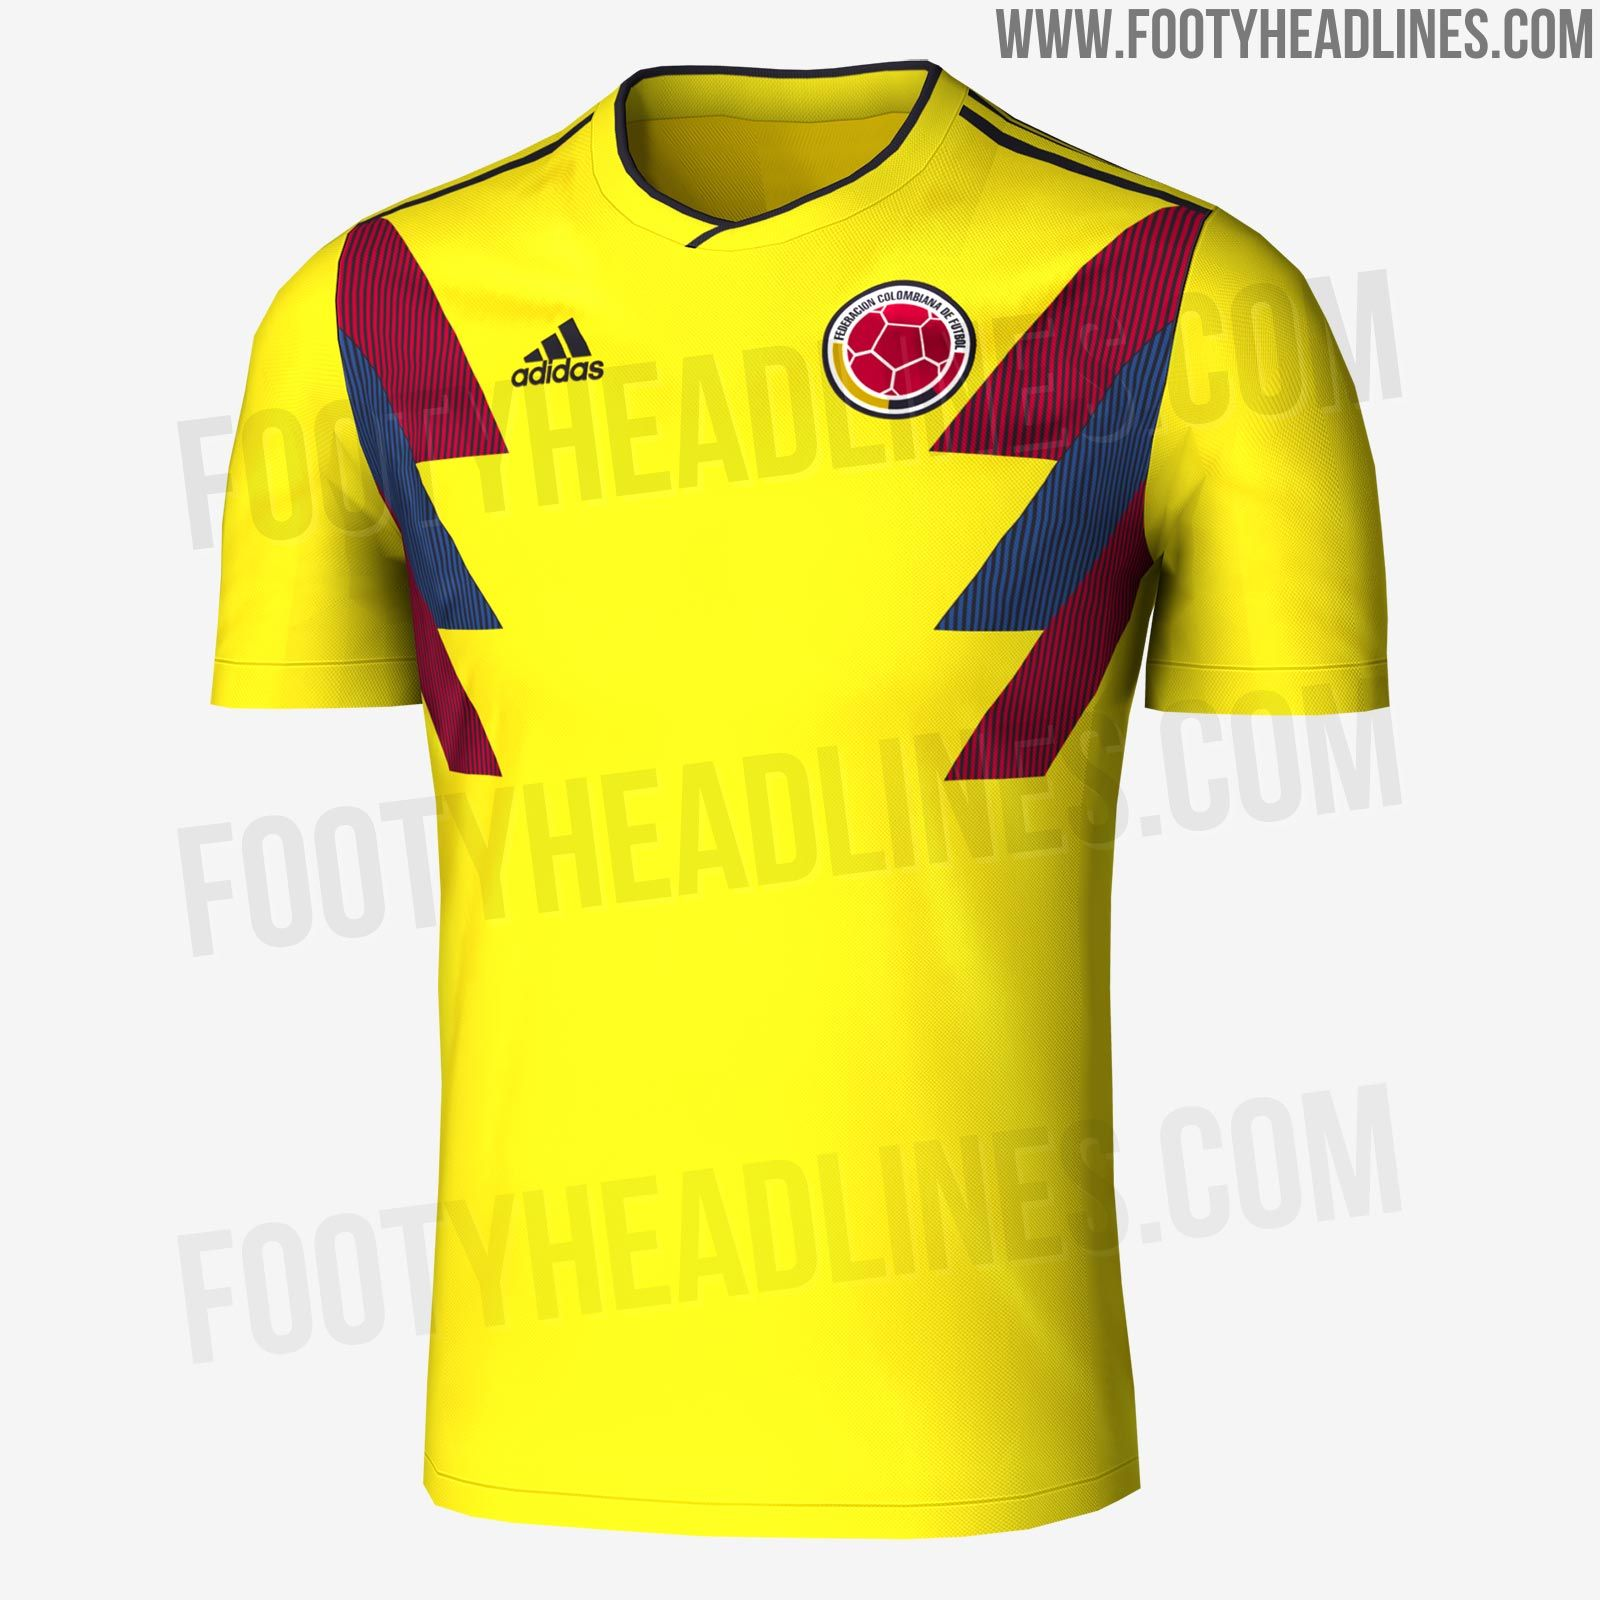 The Colombia 2018 World Cup Kit Introduces A Bold Design Inspired By Fashion Big Size T Shirt Spain 3xl 1990 Jersey